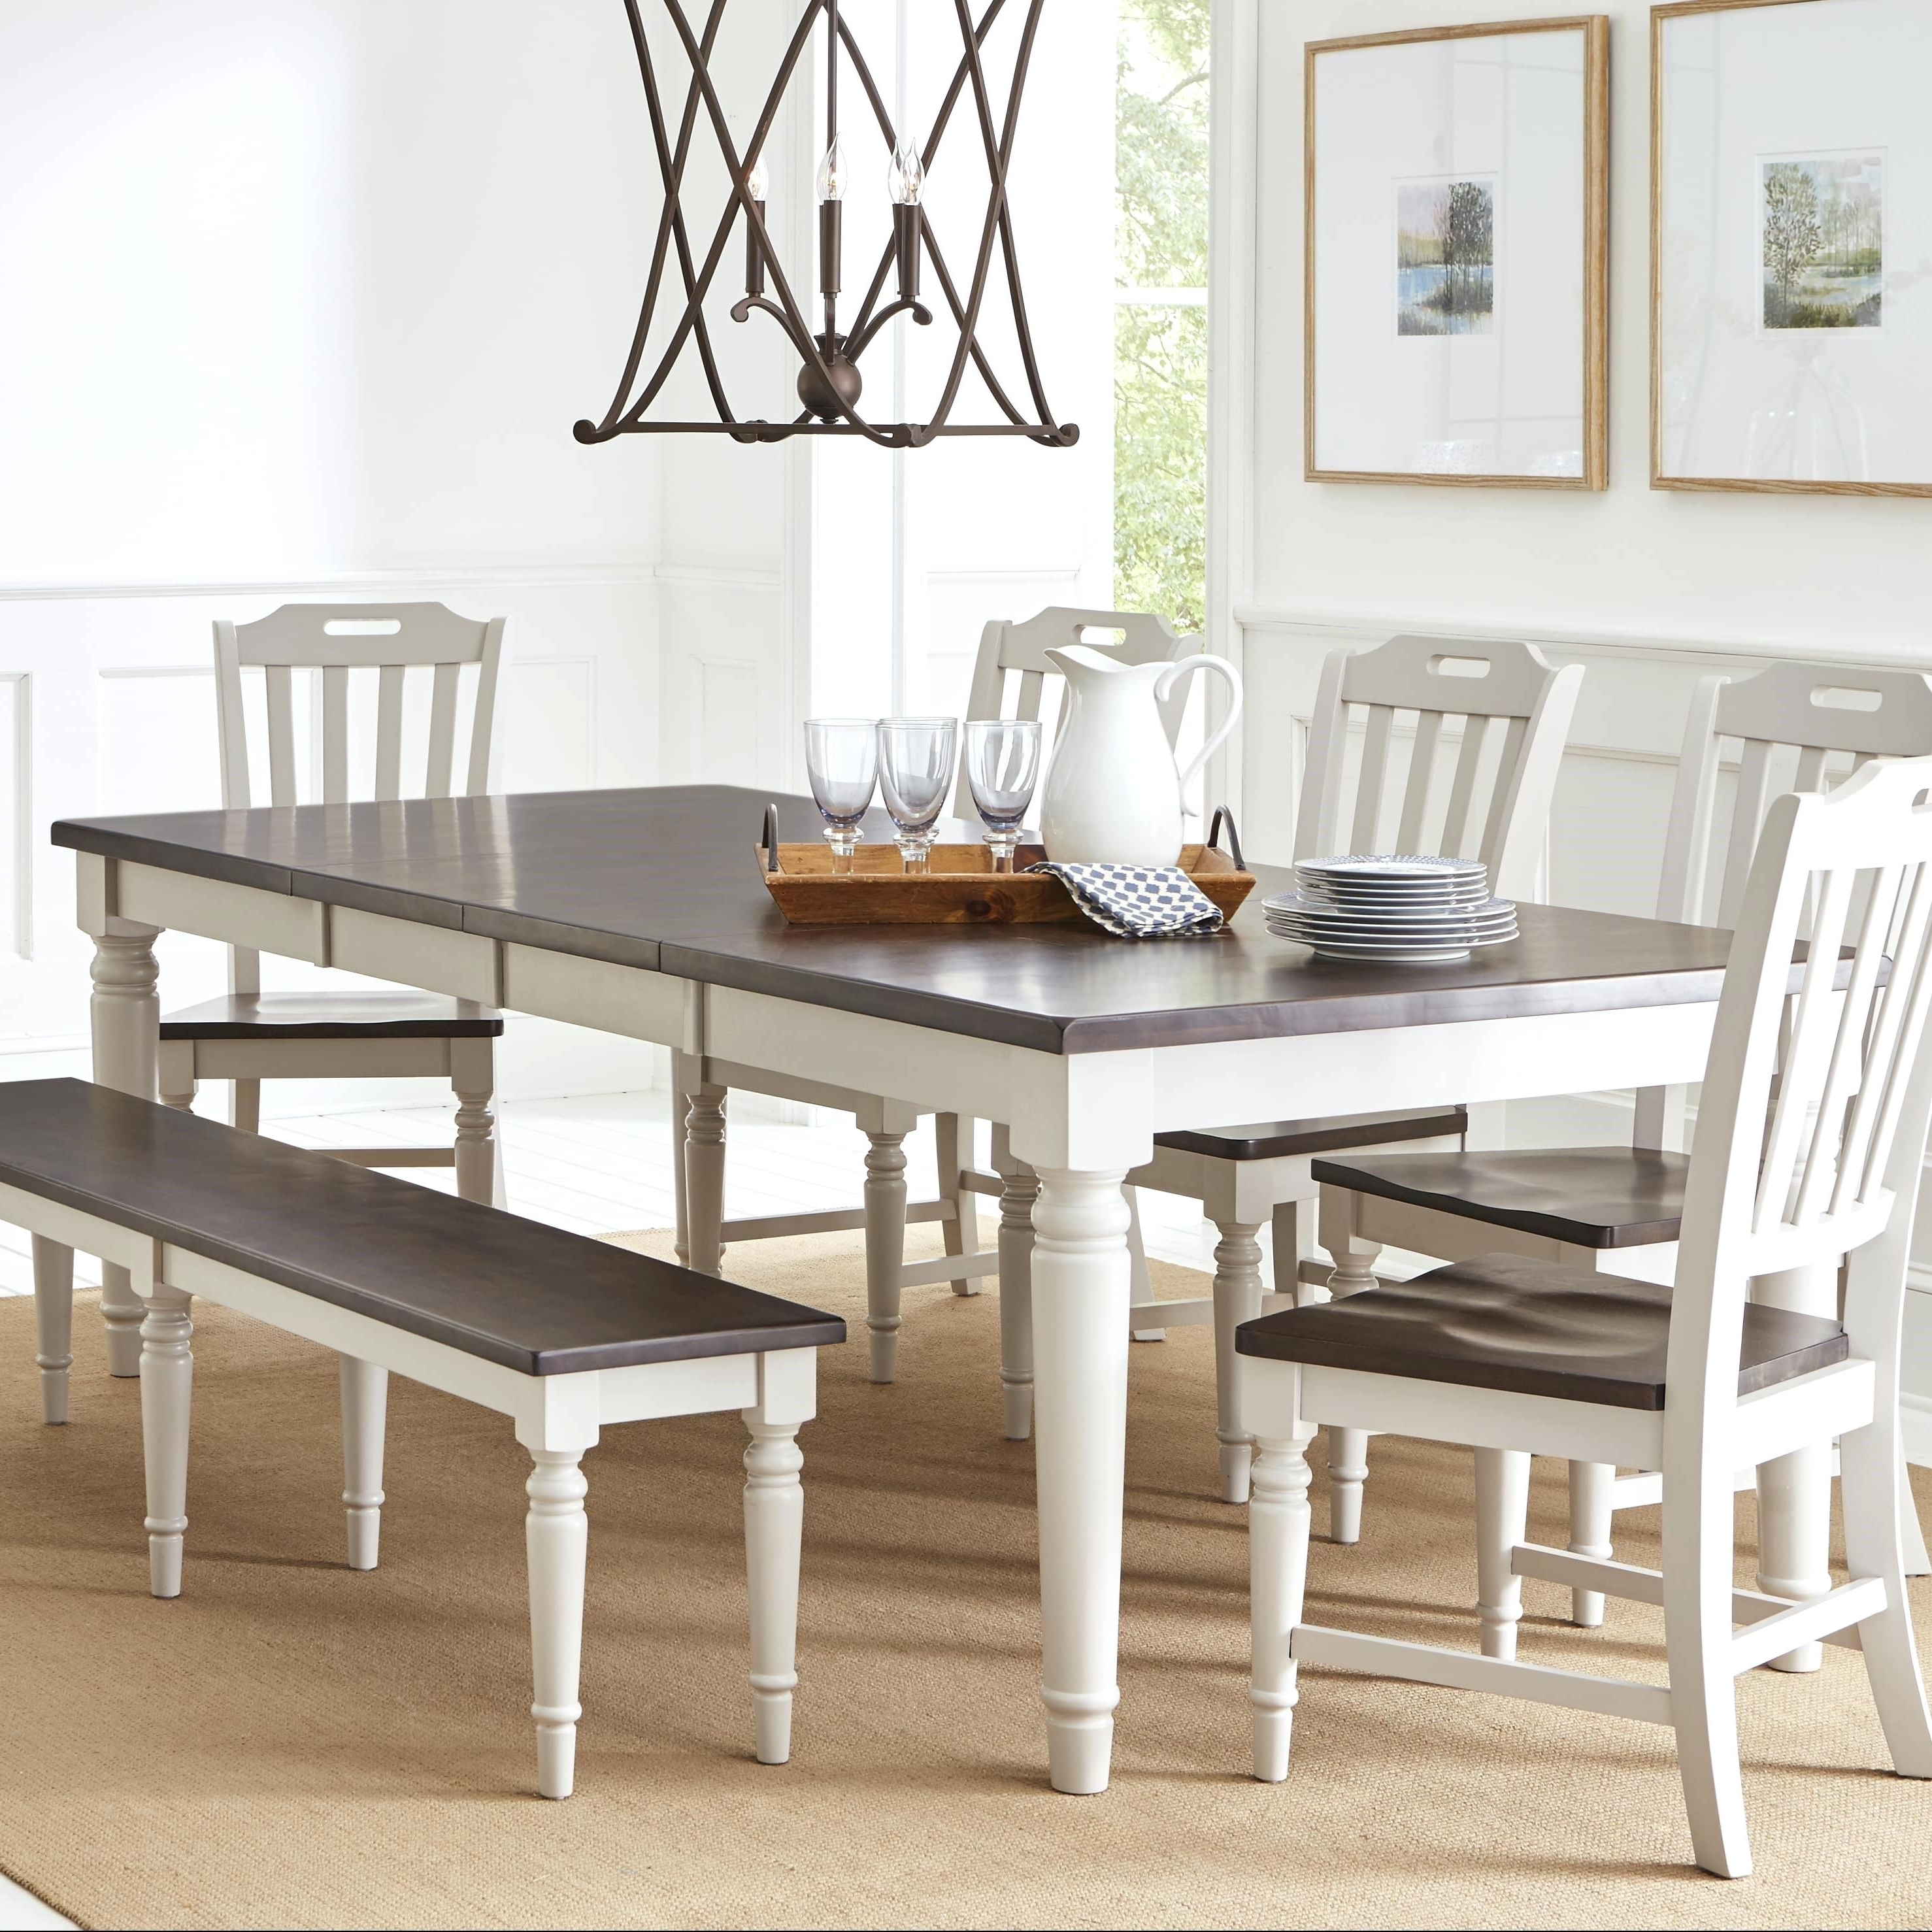 Magnolia Home White Keeping 96 Inch Dining Tables Intended For Preferred 96 Dining Table Rectangle Nautical X Dining Table Nct Home Bar Ideas (View 9 of 25)